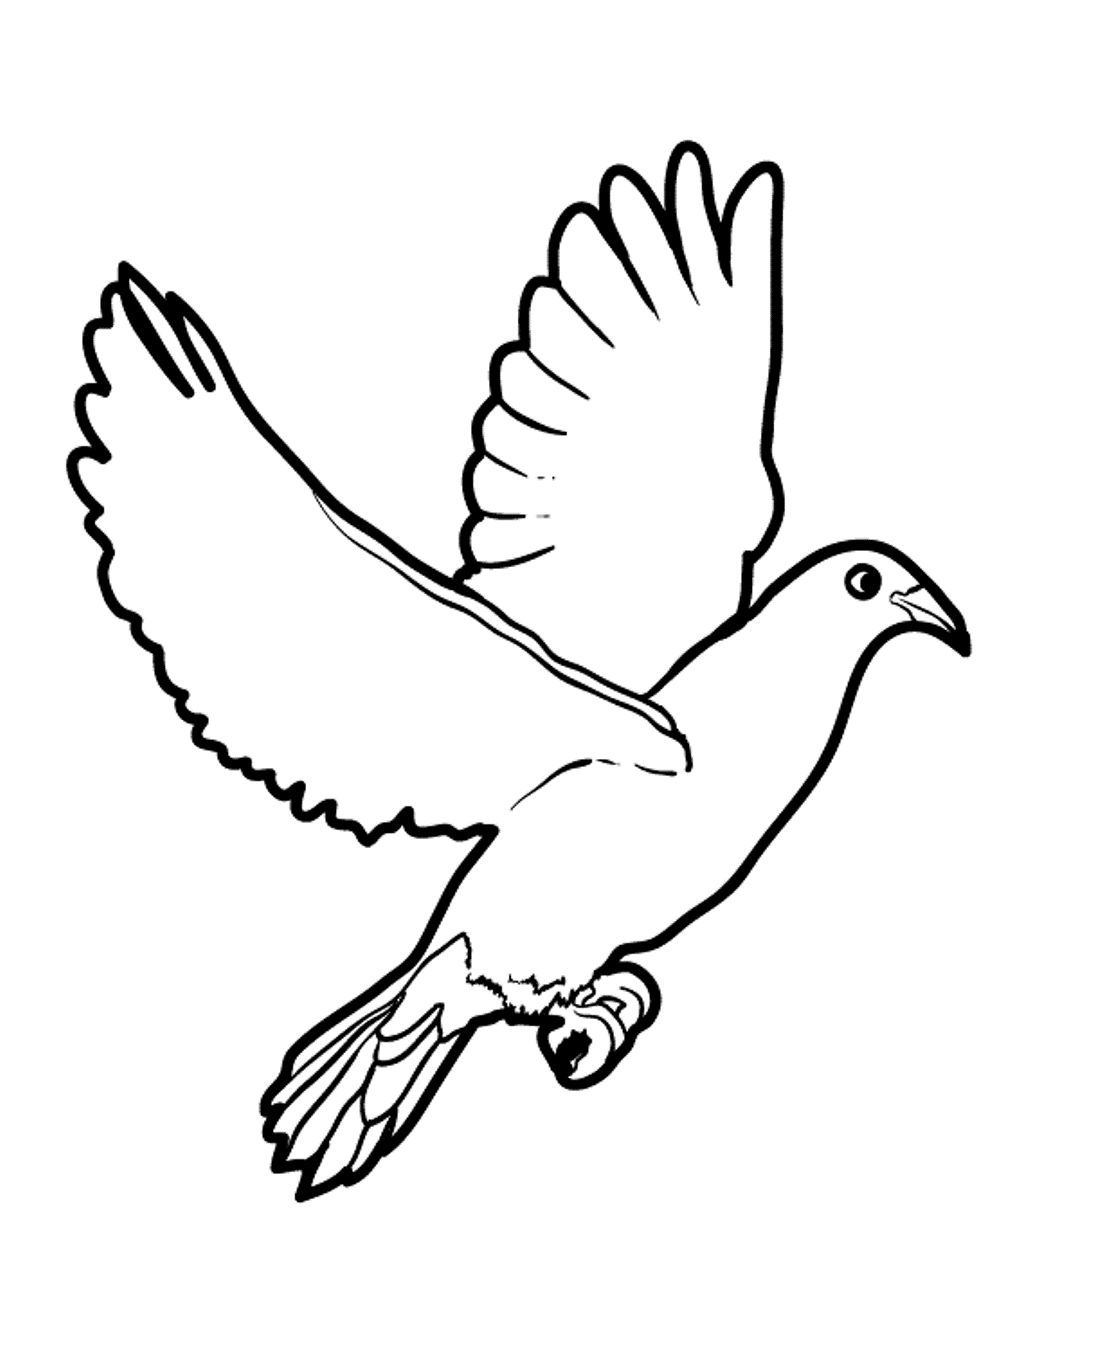 25 Best Image Of Bird Coloring Page Albanysinsanity Com Bird Coloring Pages Bird Coloring Page Bird Coloring